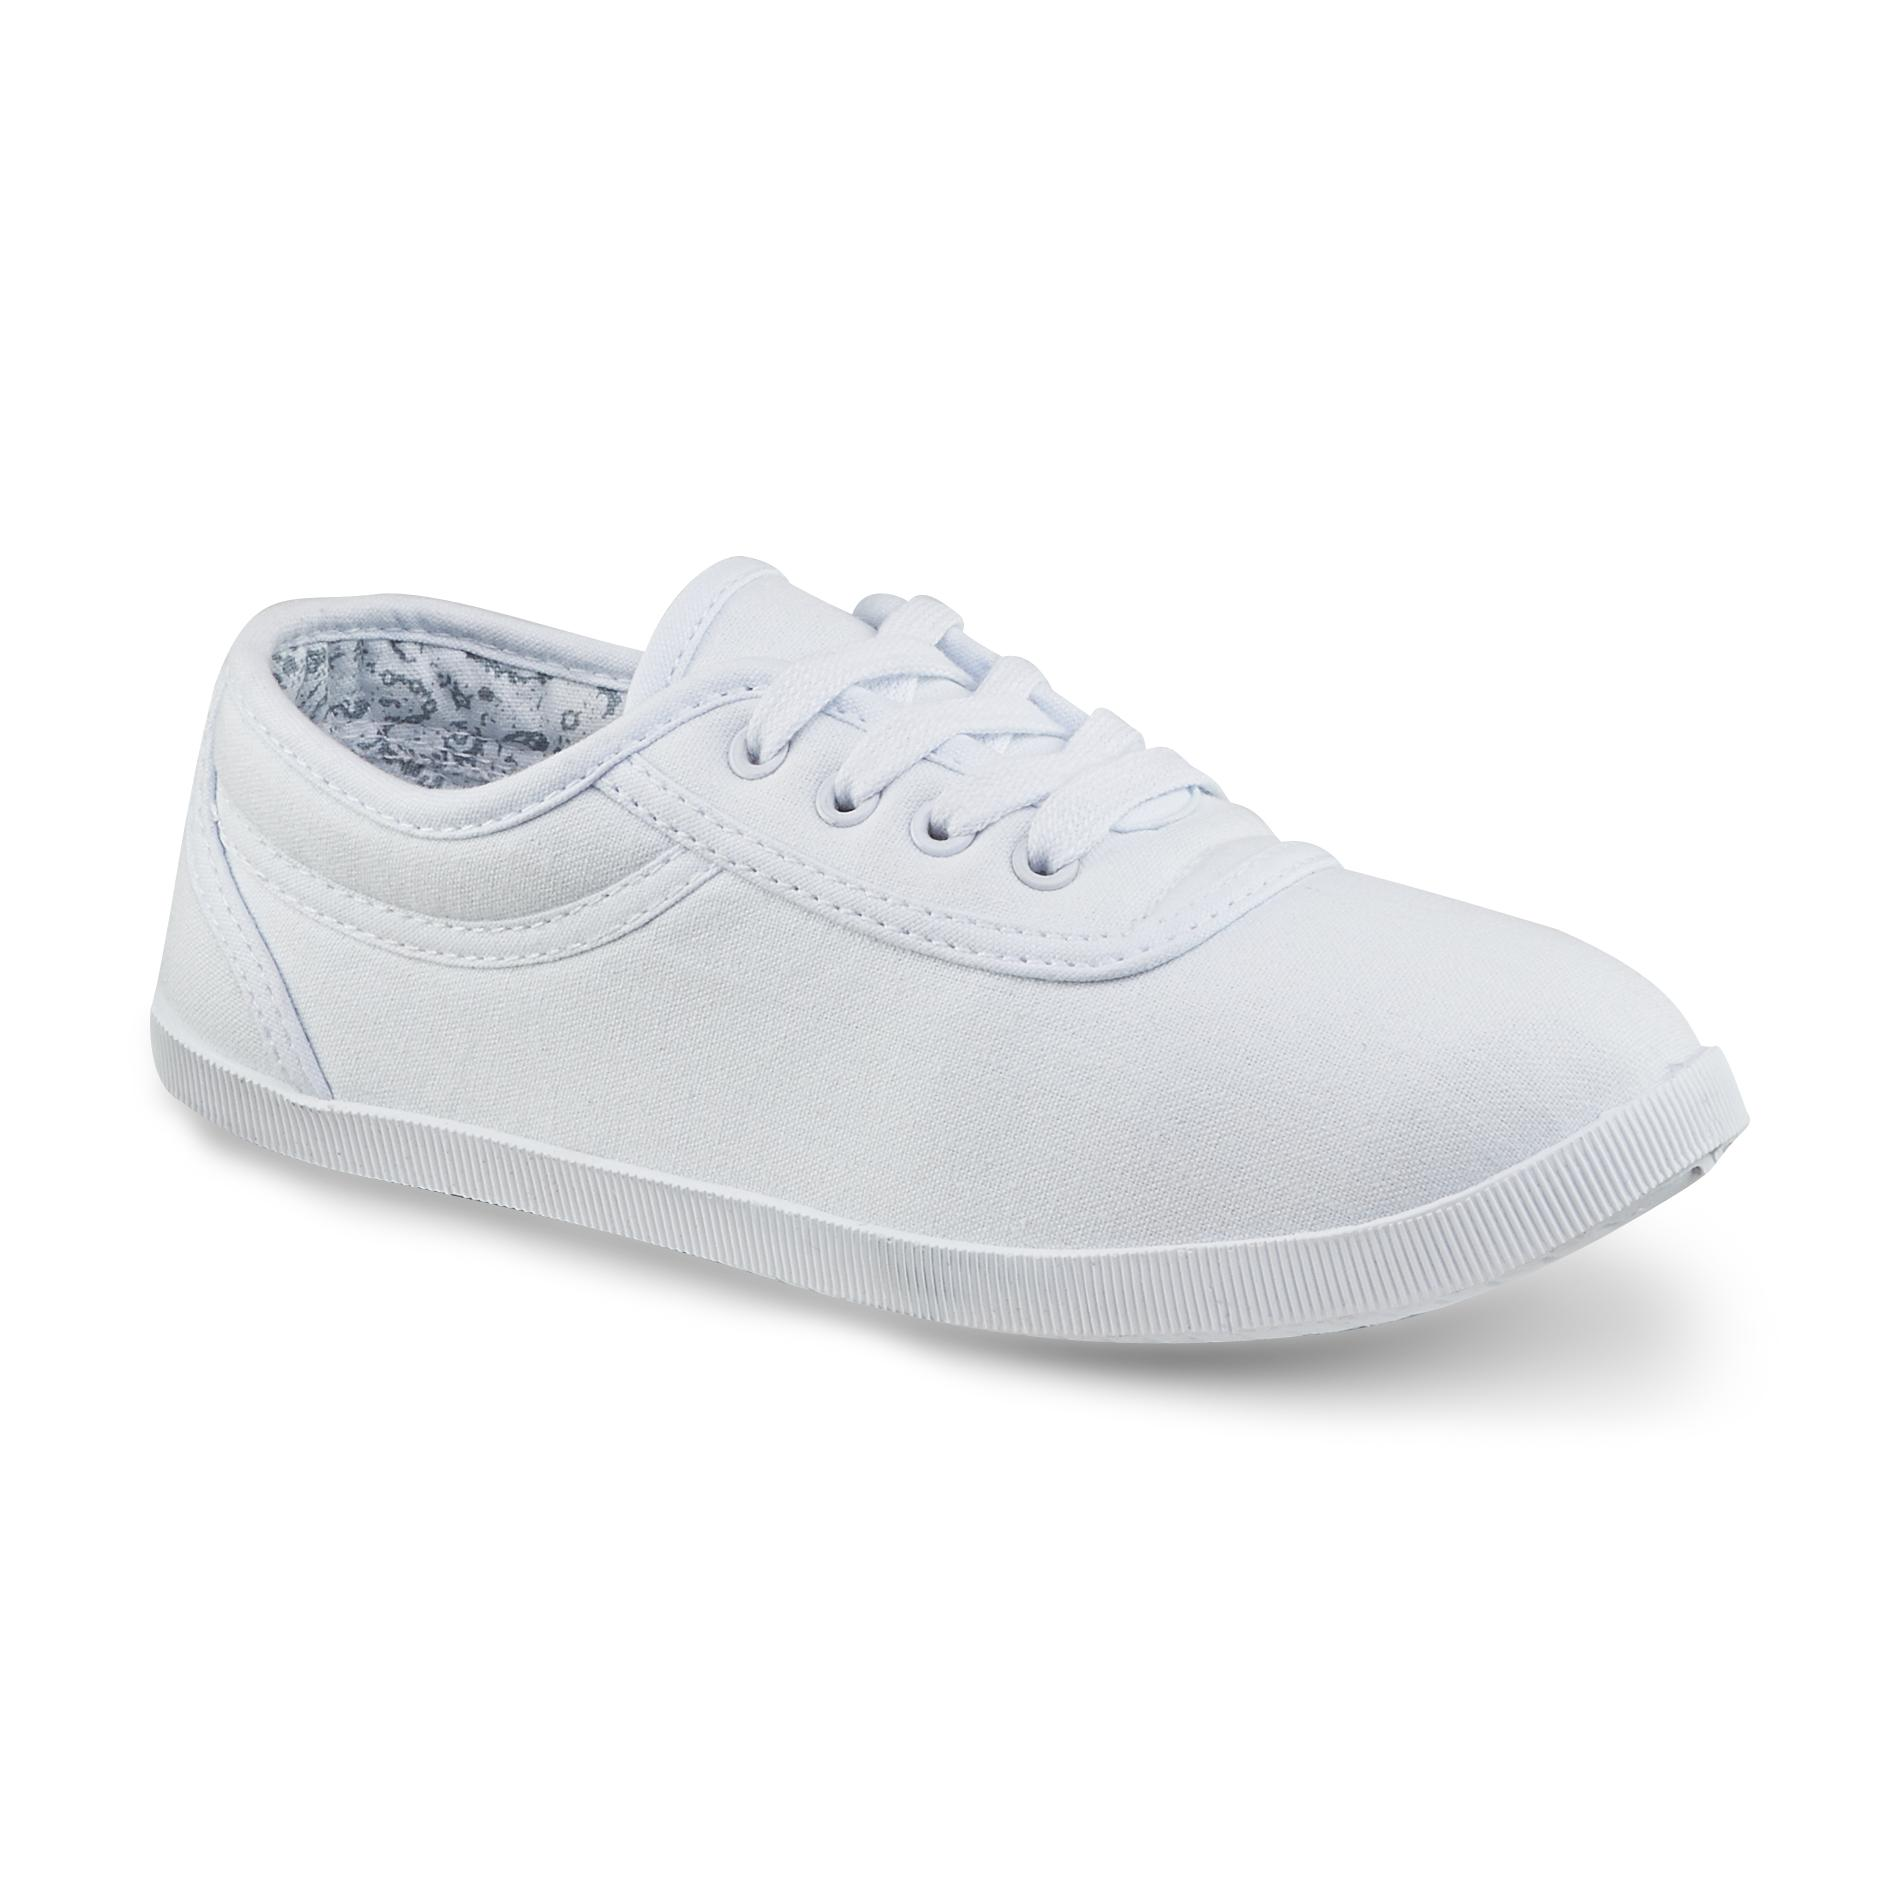 Kmart Canvas Printing Basic Editions Women S Eavan Canvas Oxford Shoe White